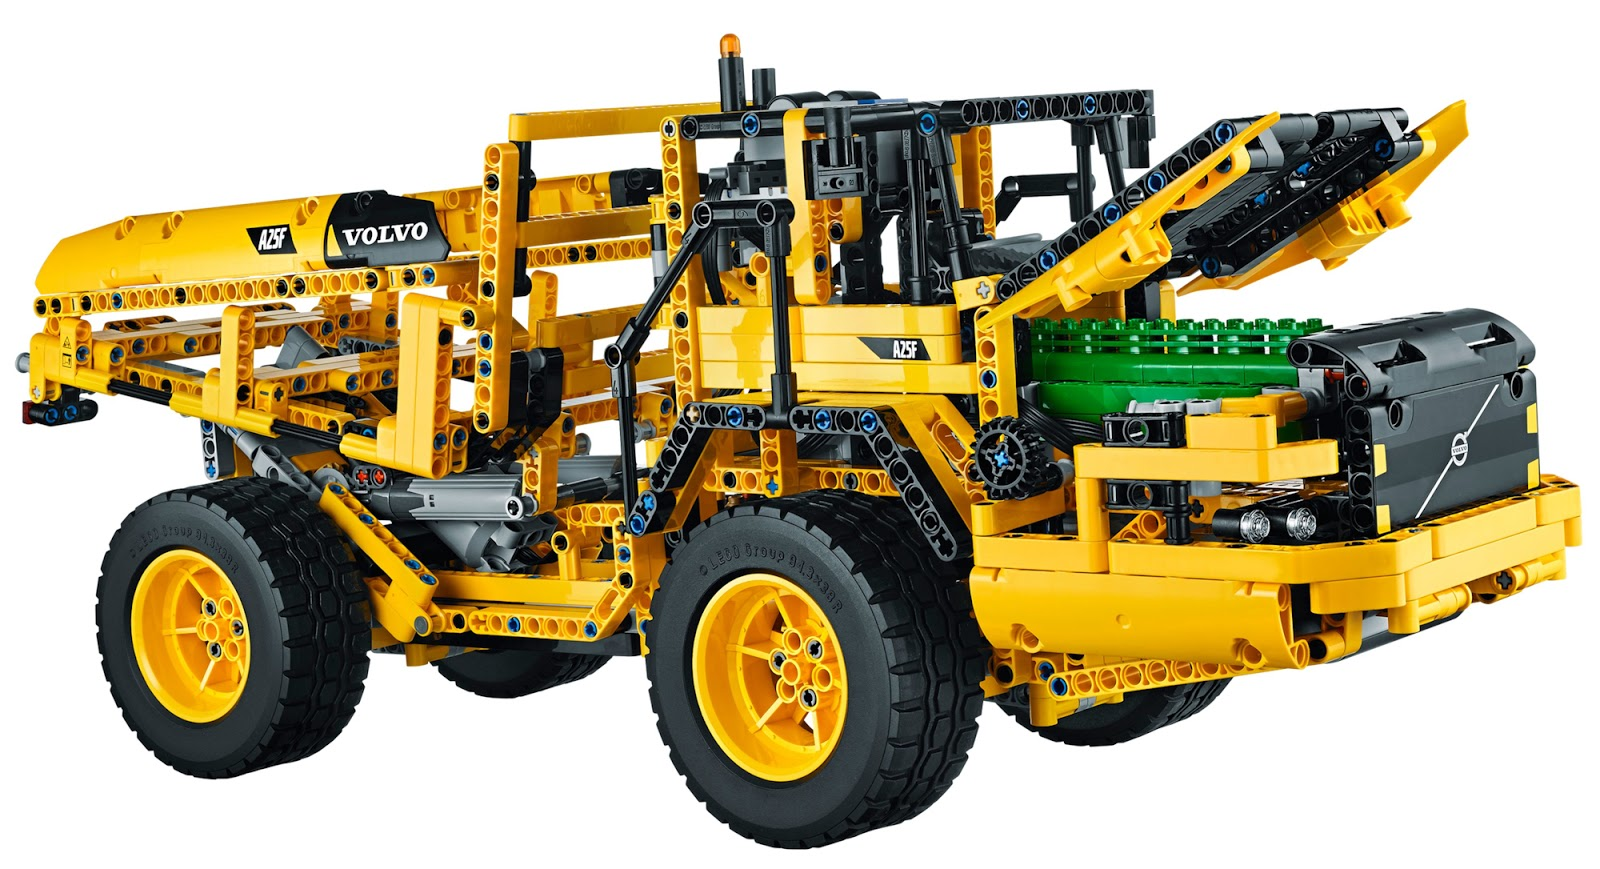 The Brickverse: Designing the Lego Technic Volvo L350F Wheel Loader